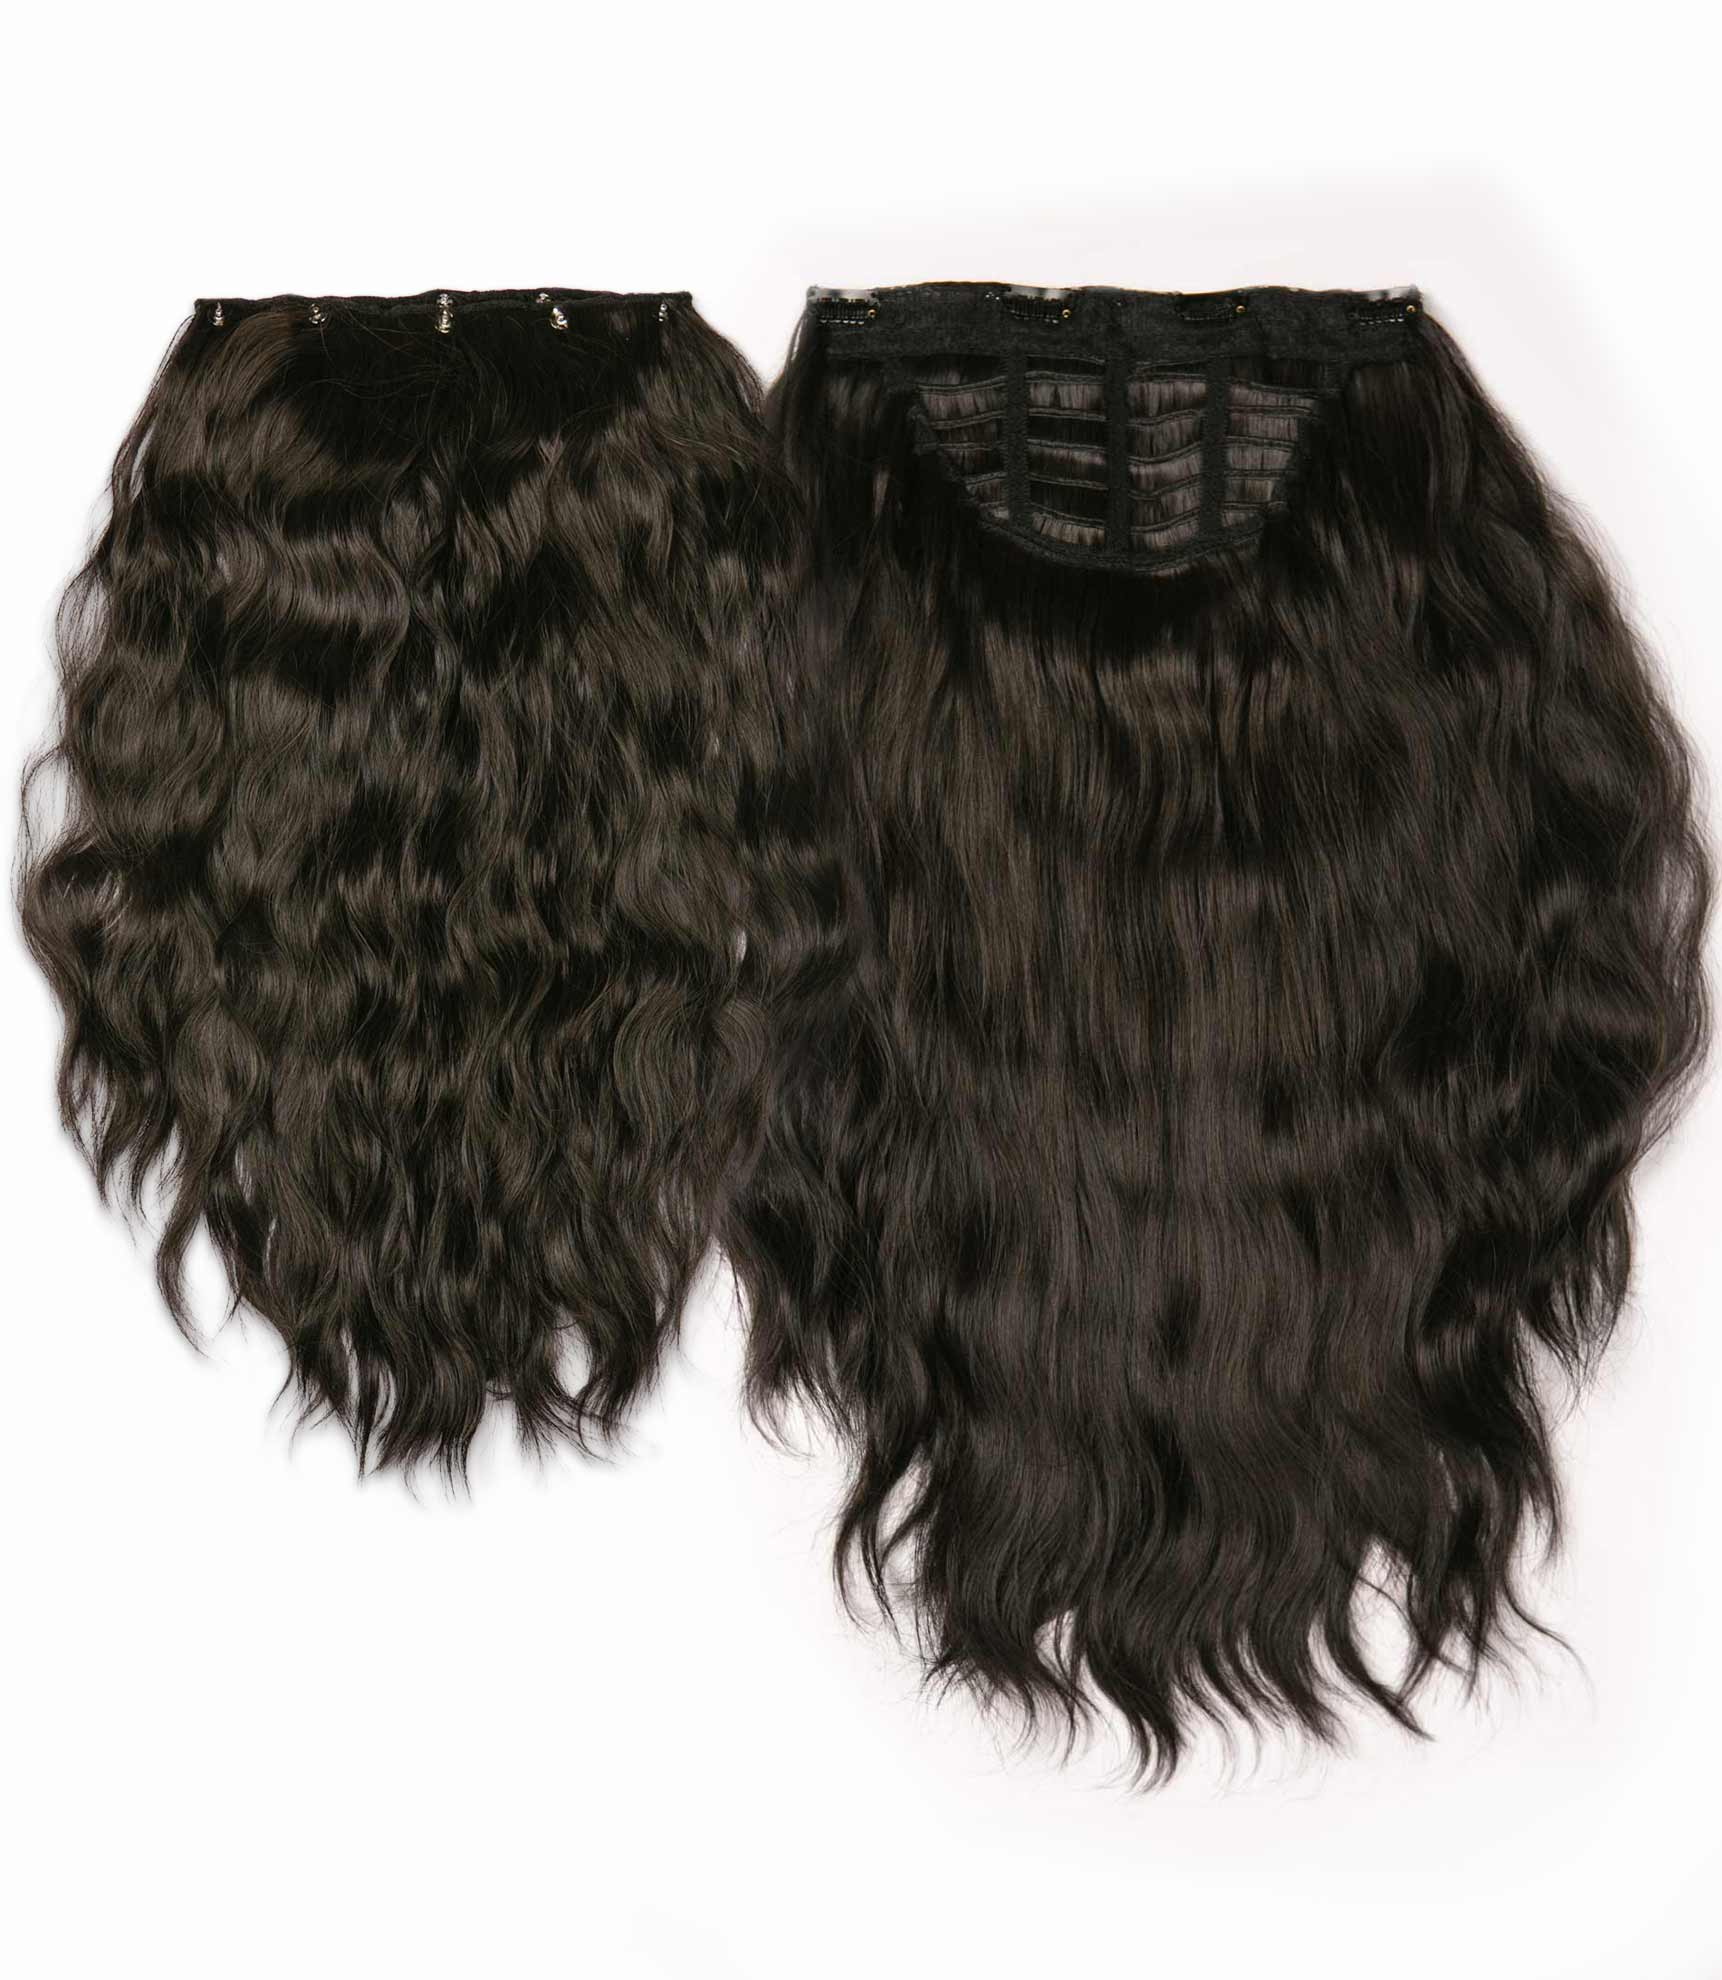 "Charlotte's Miracle Makeover HD Fibre Hair Extensions - 14"" / 22"" - Dark Brown (1319142260816)"